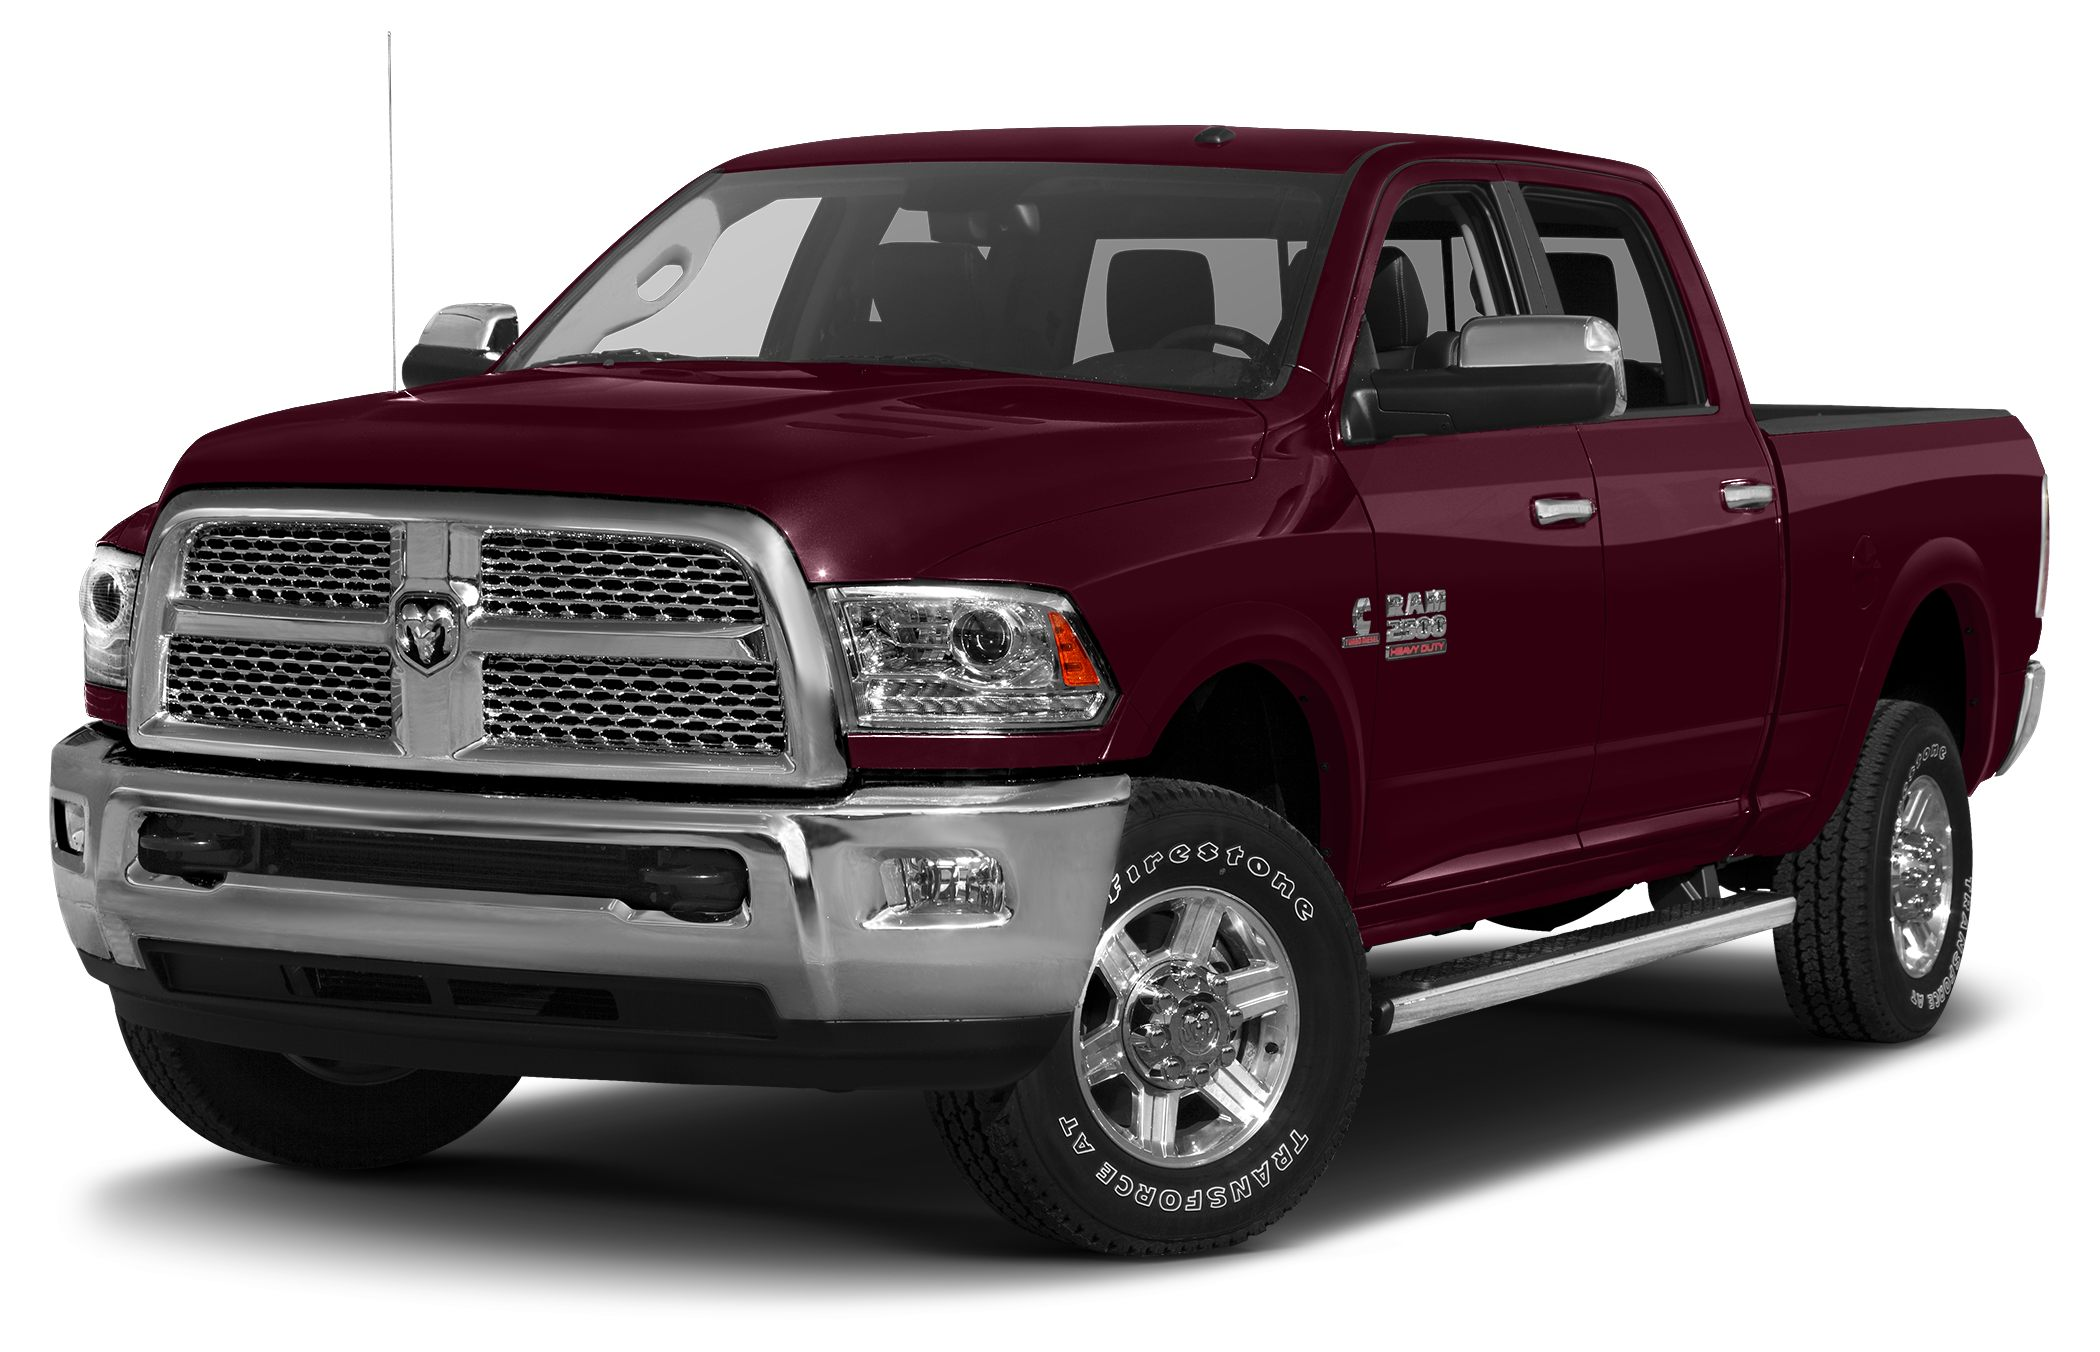 2016 RAM 2500 Laramie 4WD Success starts with Firkins Chrysler Jeep Dodge What a price for a 16